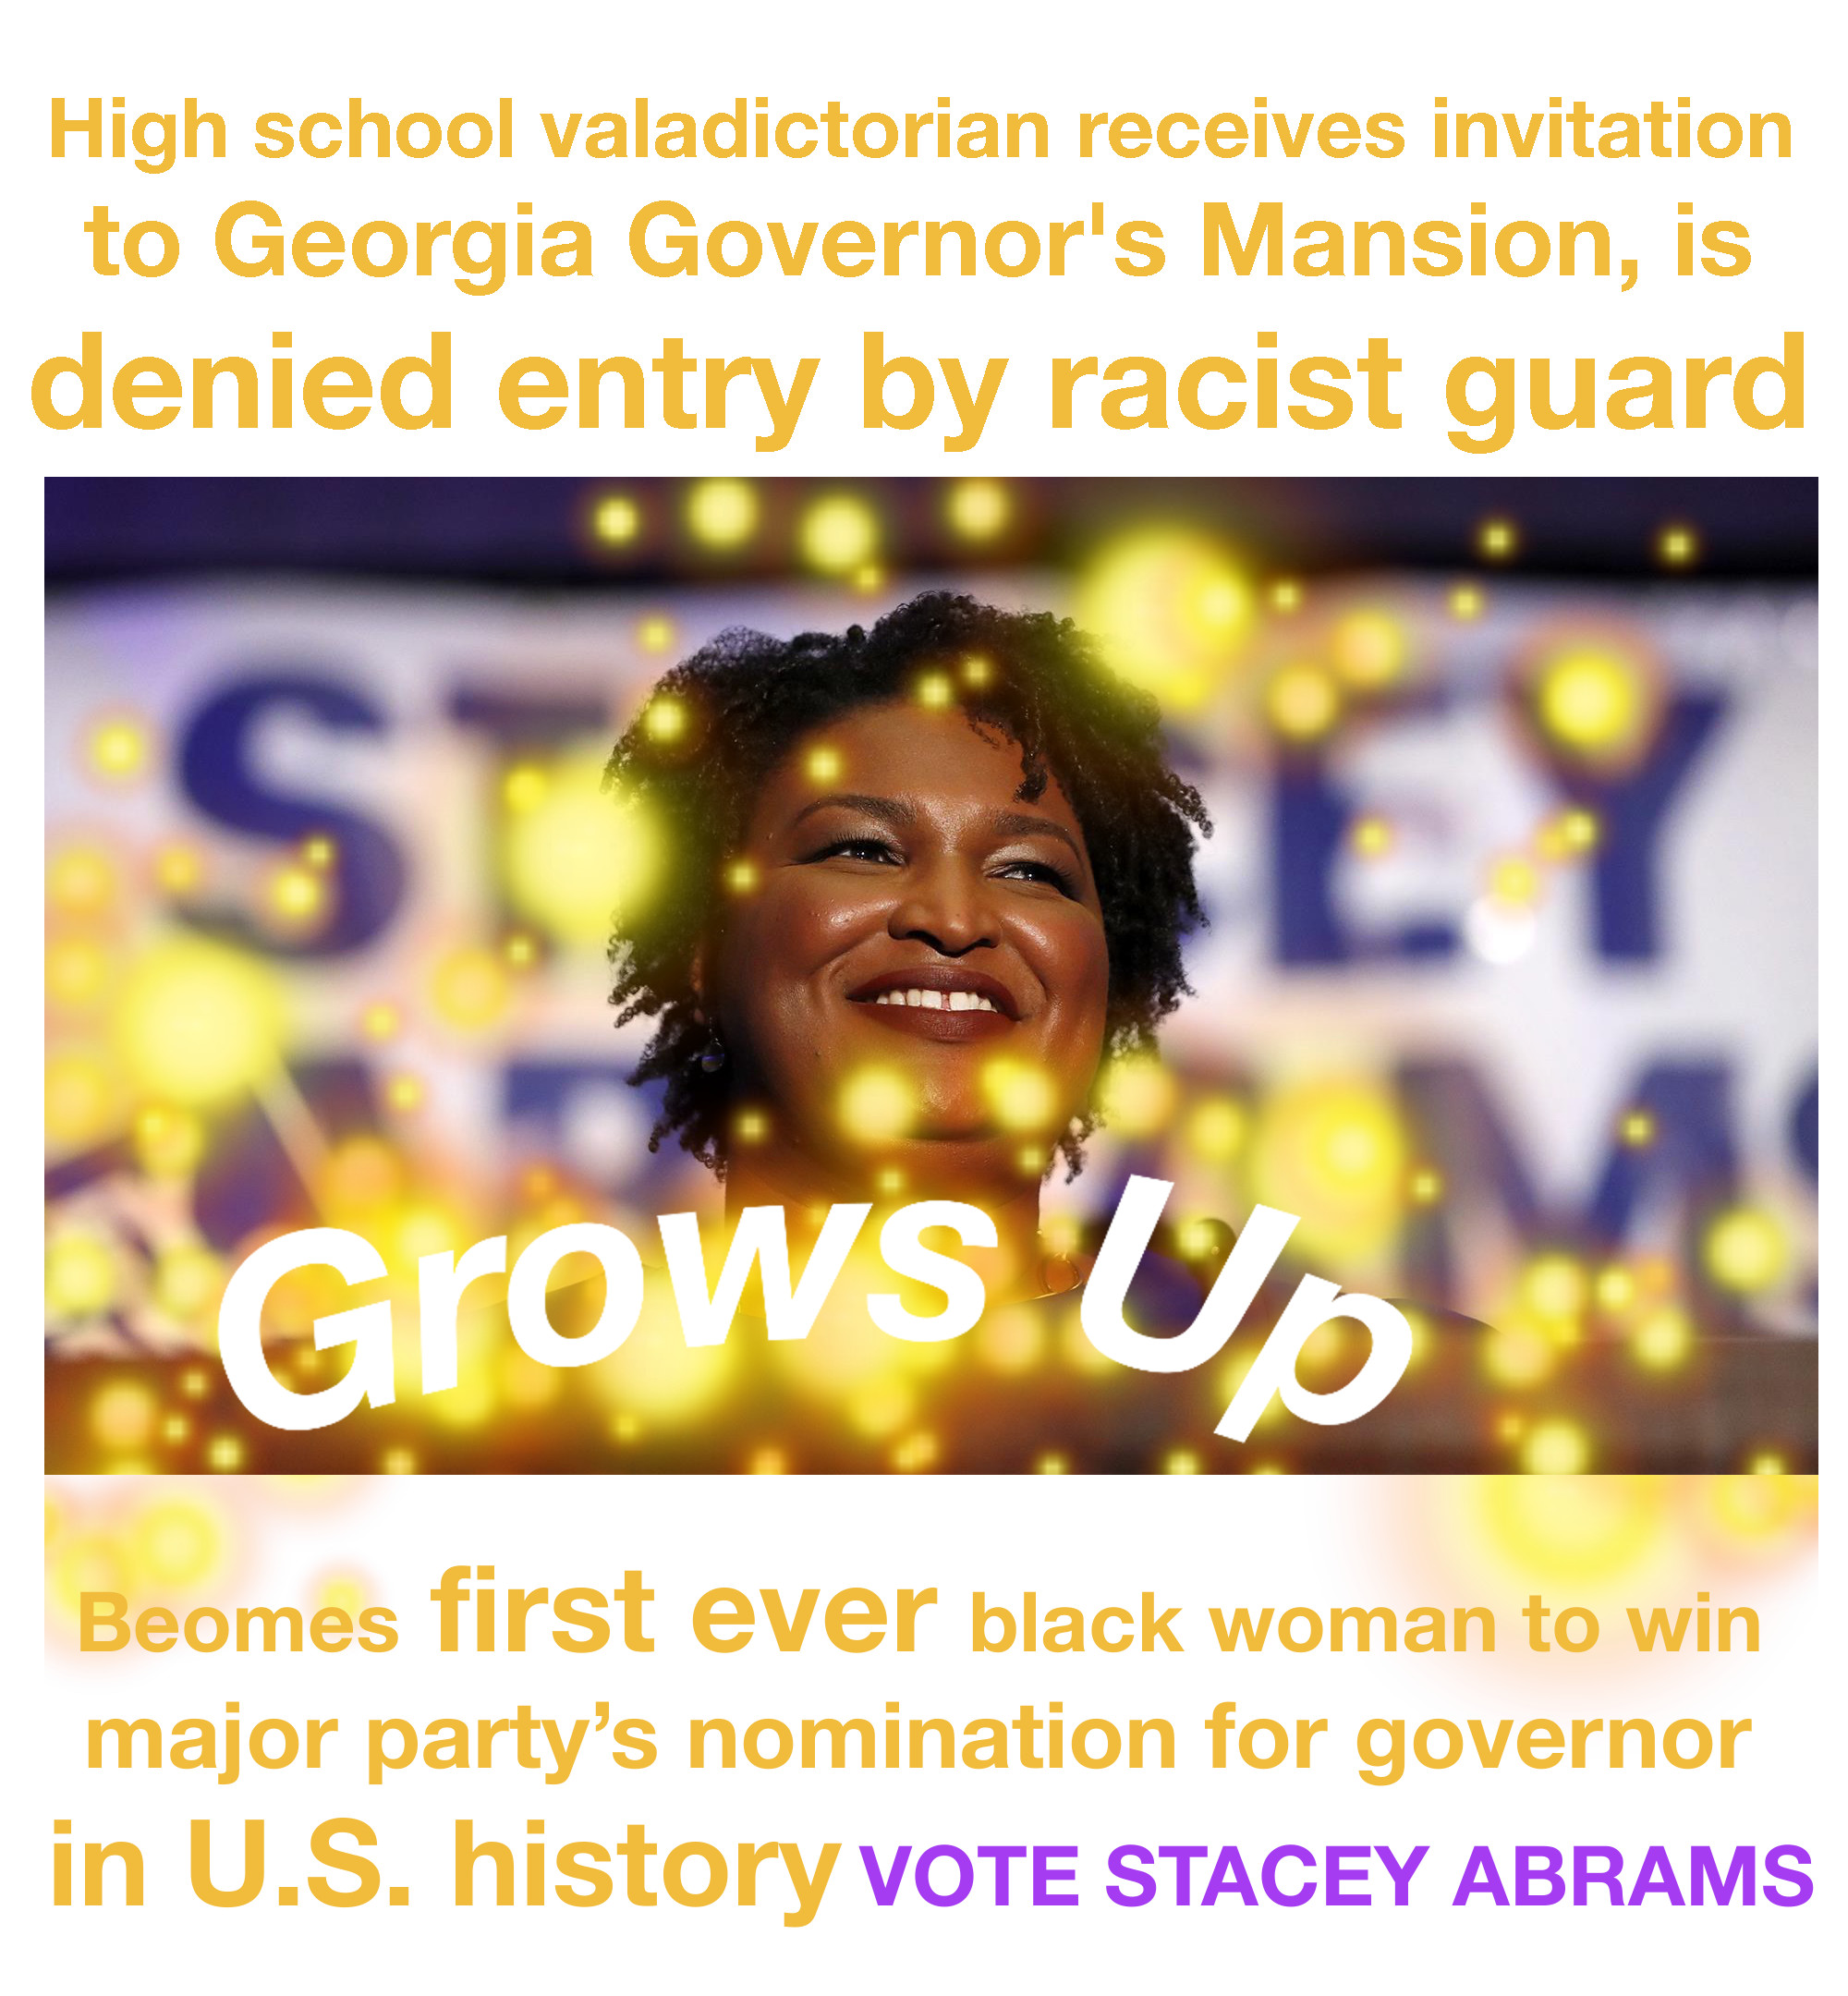 Stacey-Abrams-Becomes-First-Black-Woman-to-be-Nominated-for-Governor.jpg